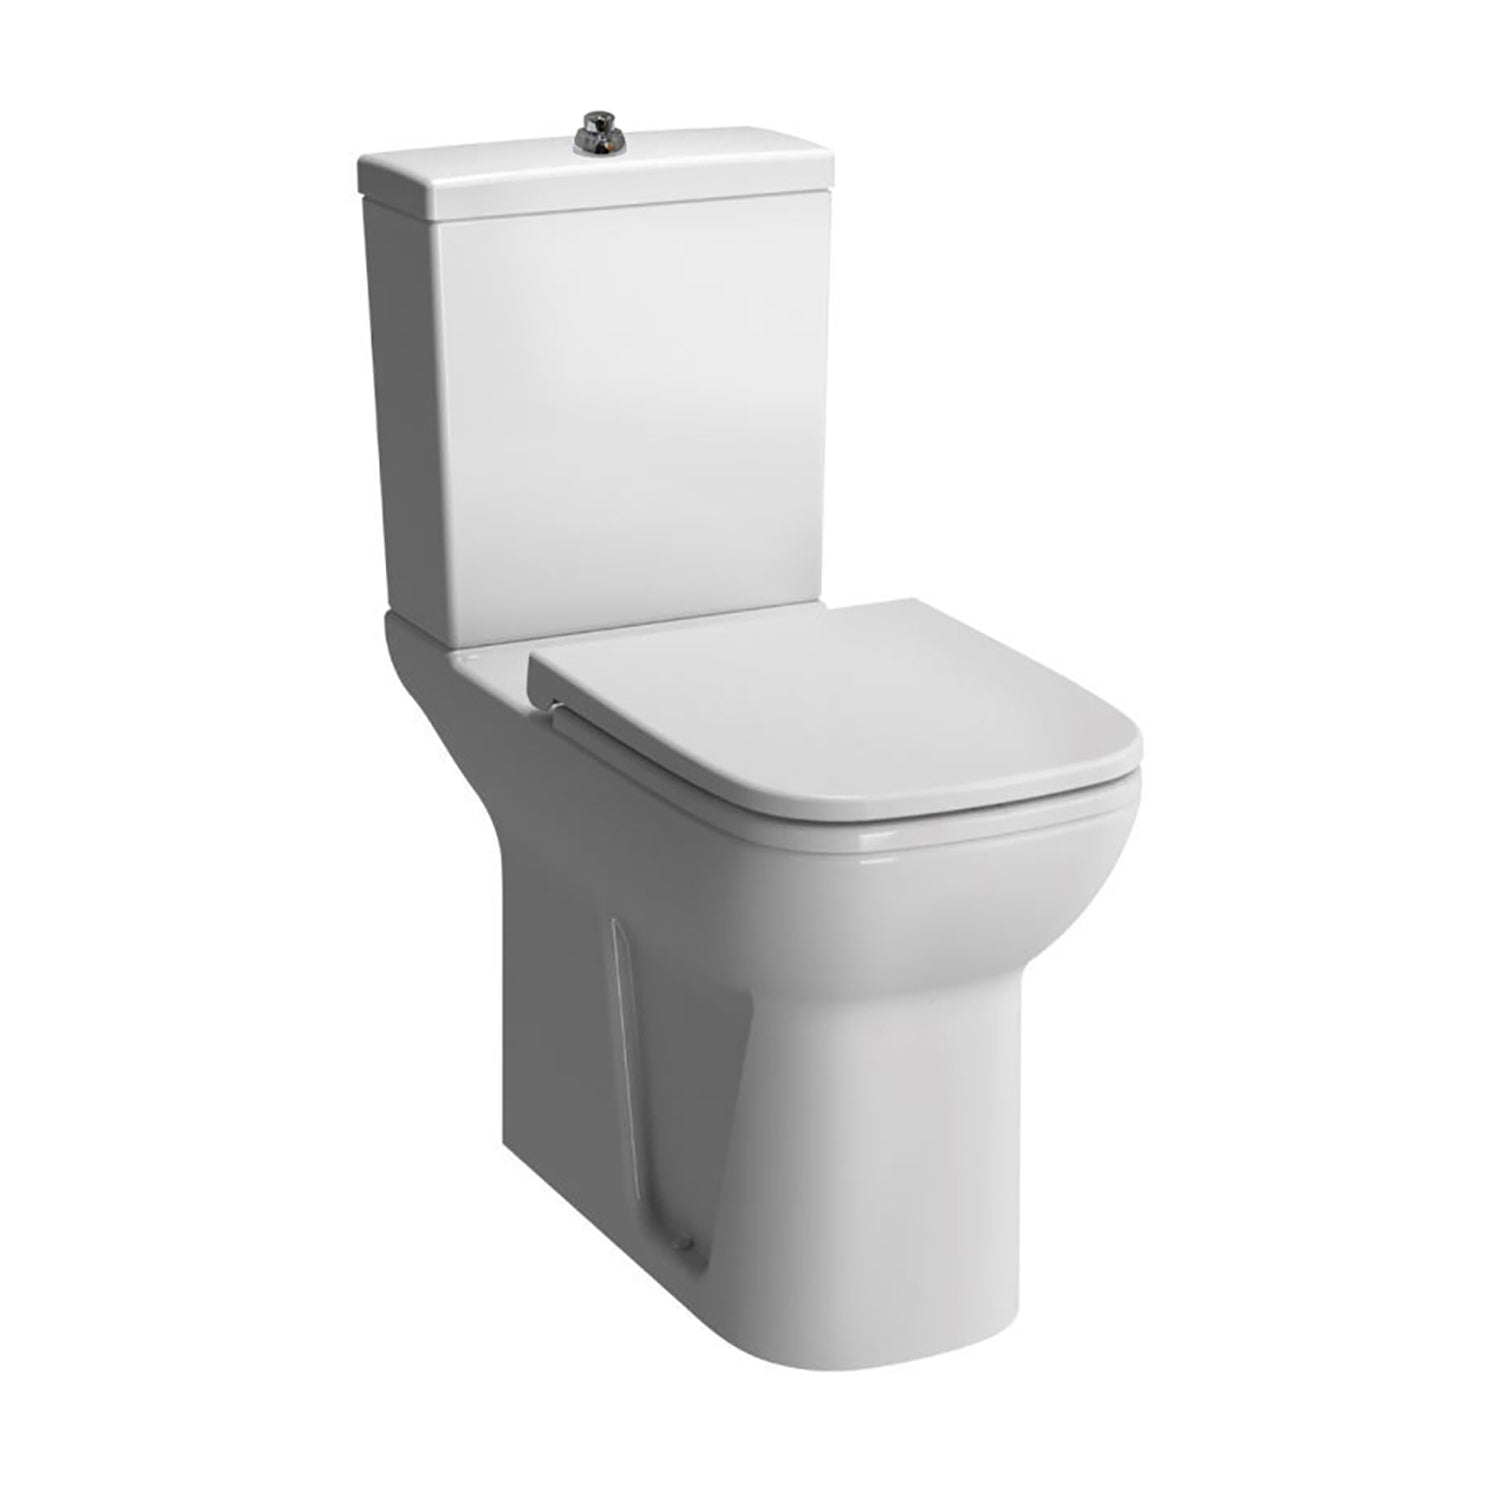 Consilio Comfort Height Close Coupled Toilet with the seat on a white background